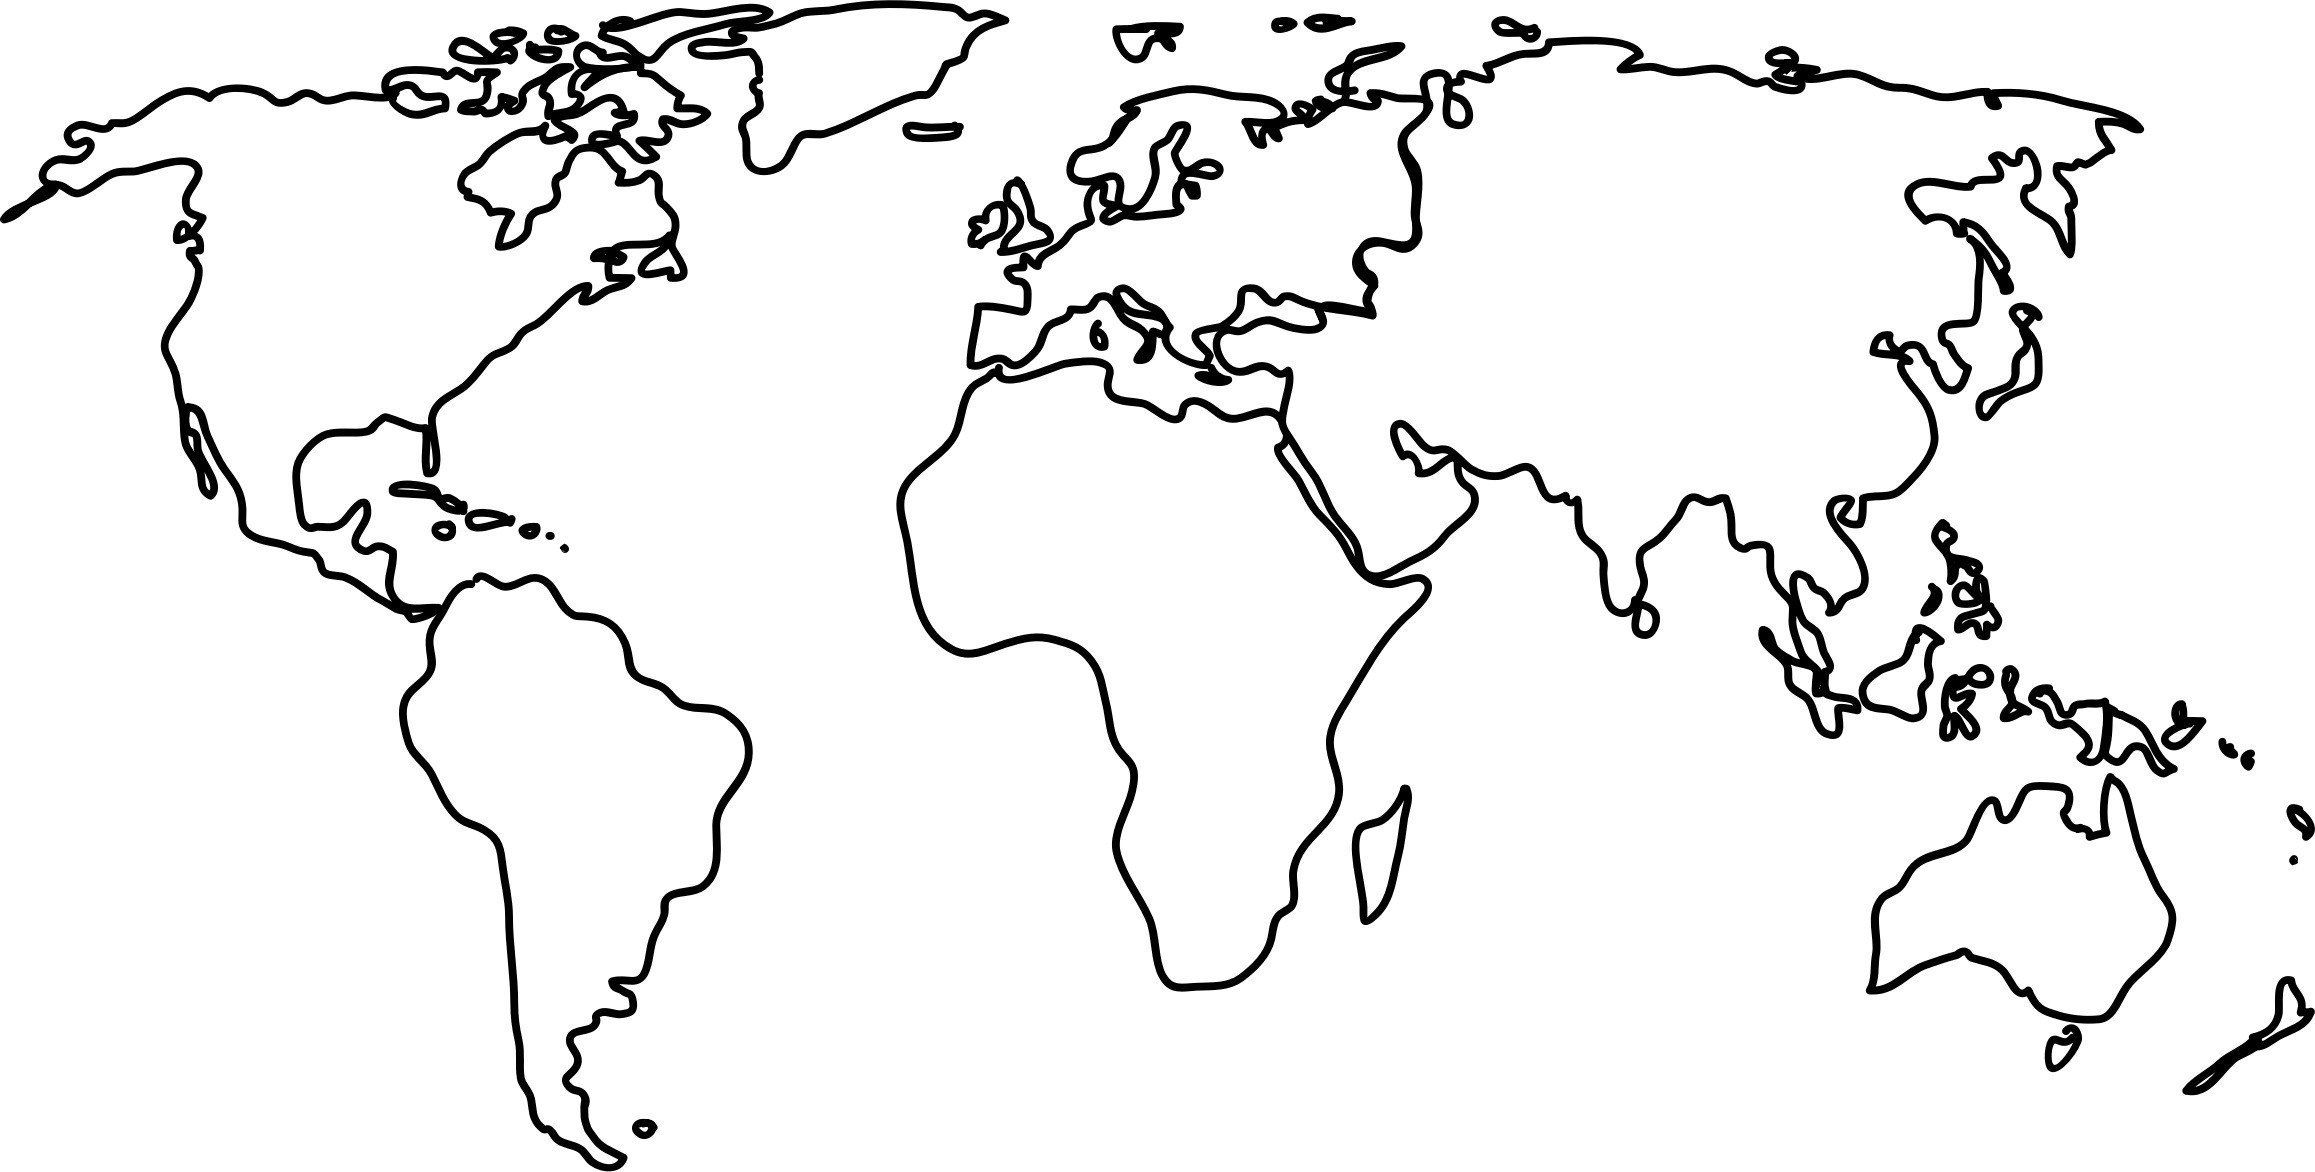 world map black and white, black and white world map